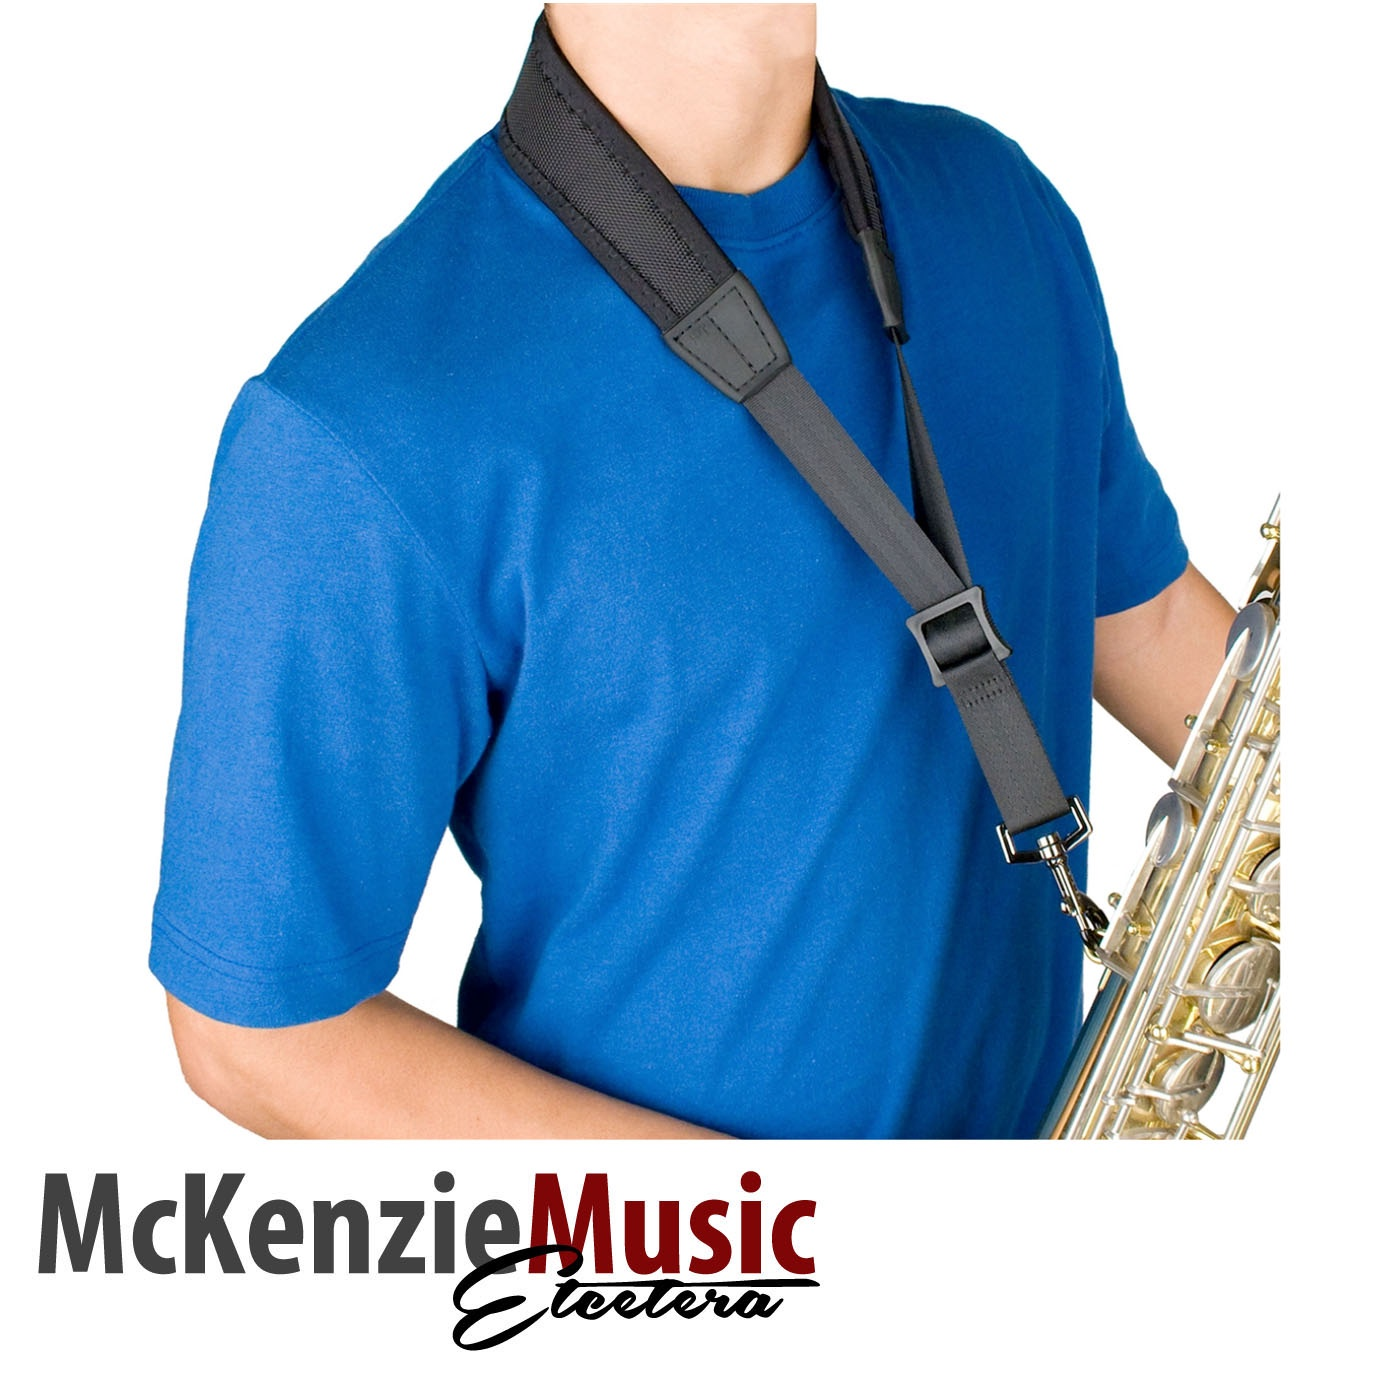 Protec Neoprene Less-Stress Sax Neck Strap - Regular